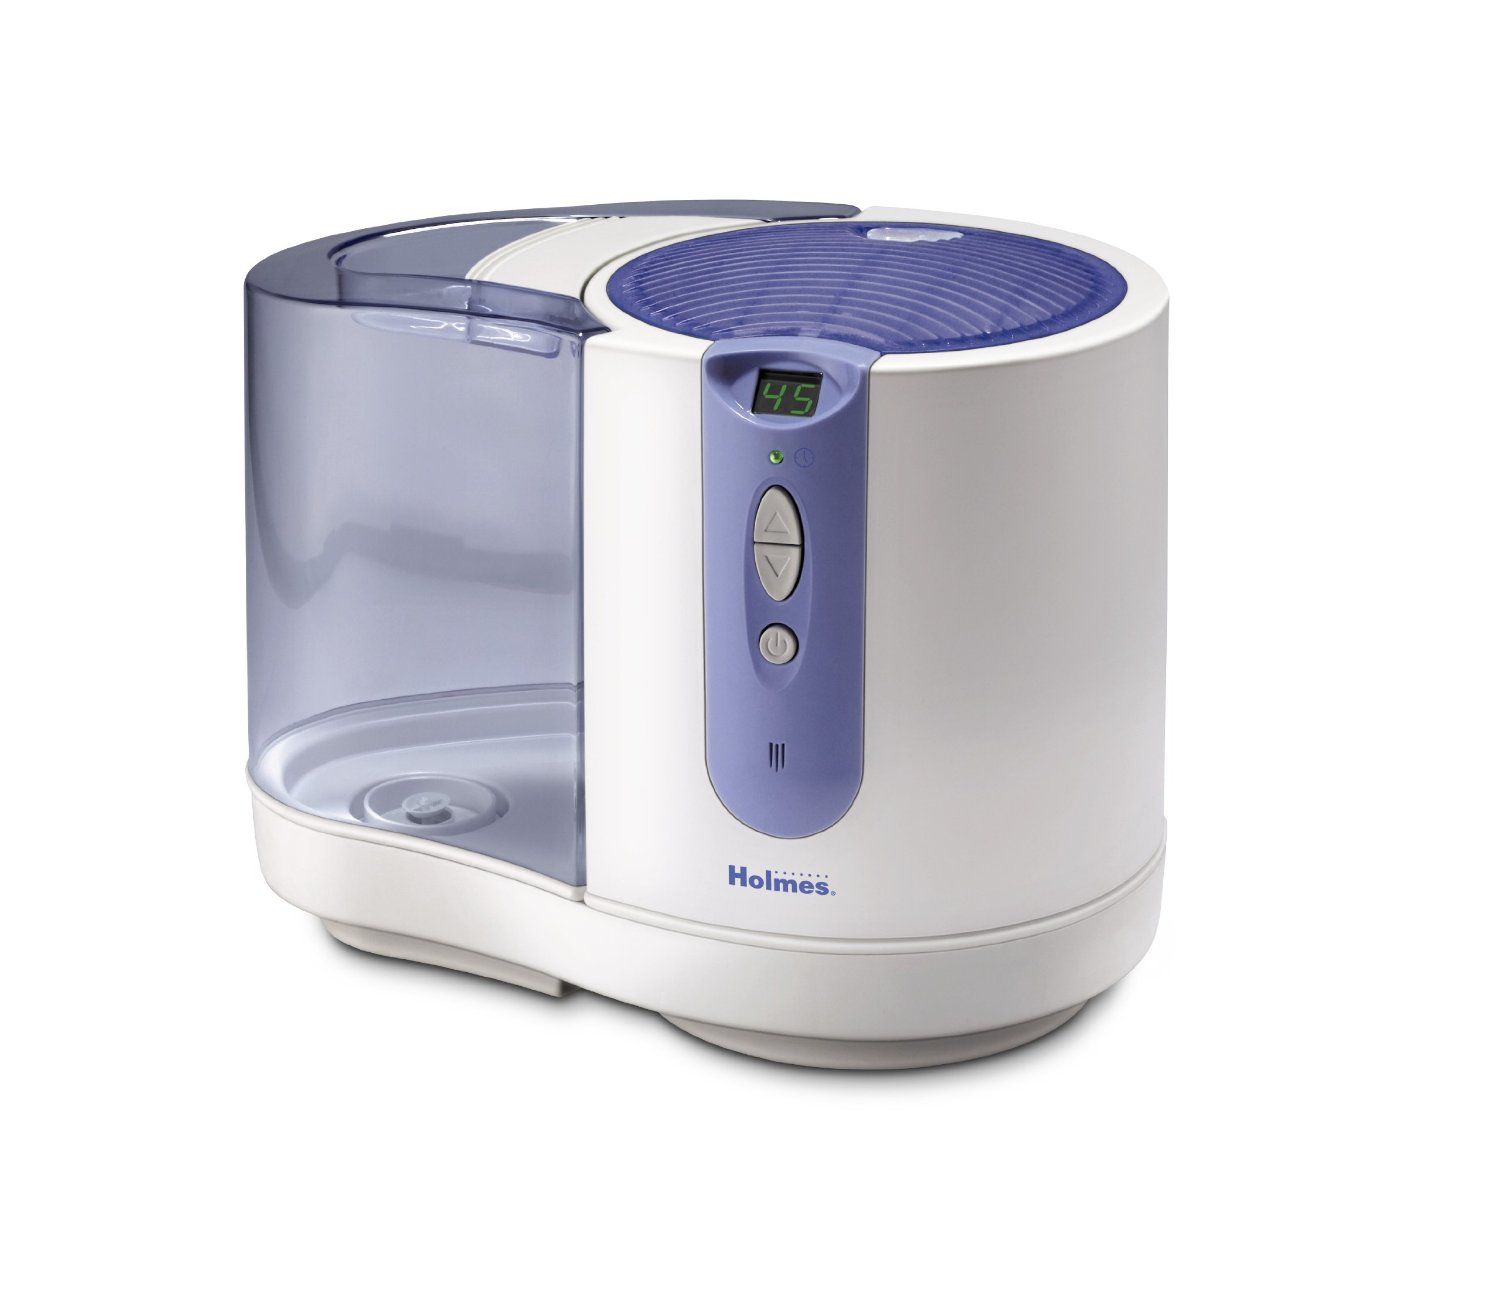 Holmes Humidifier Reviews Ratings Consumer Reports 2015 #484C7B